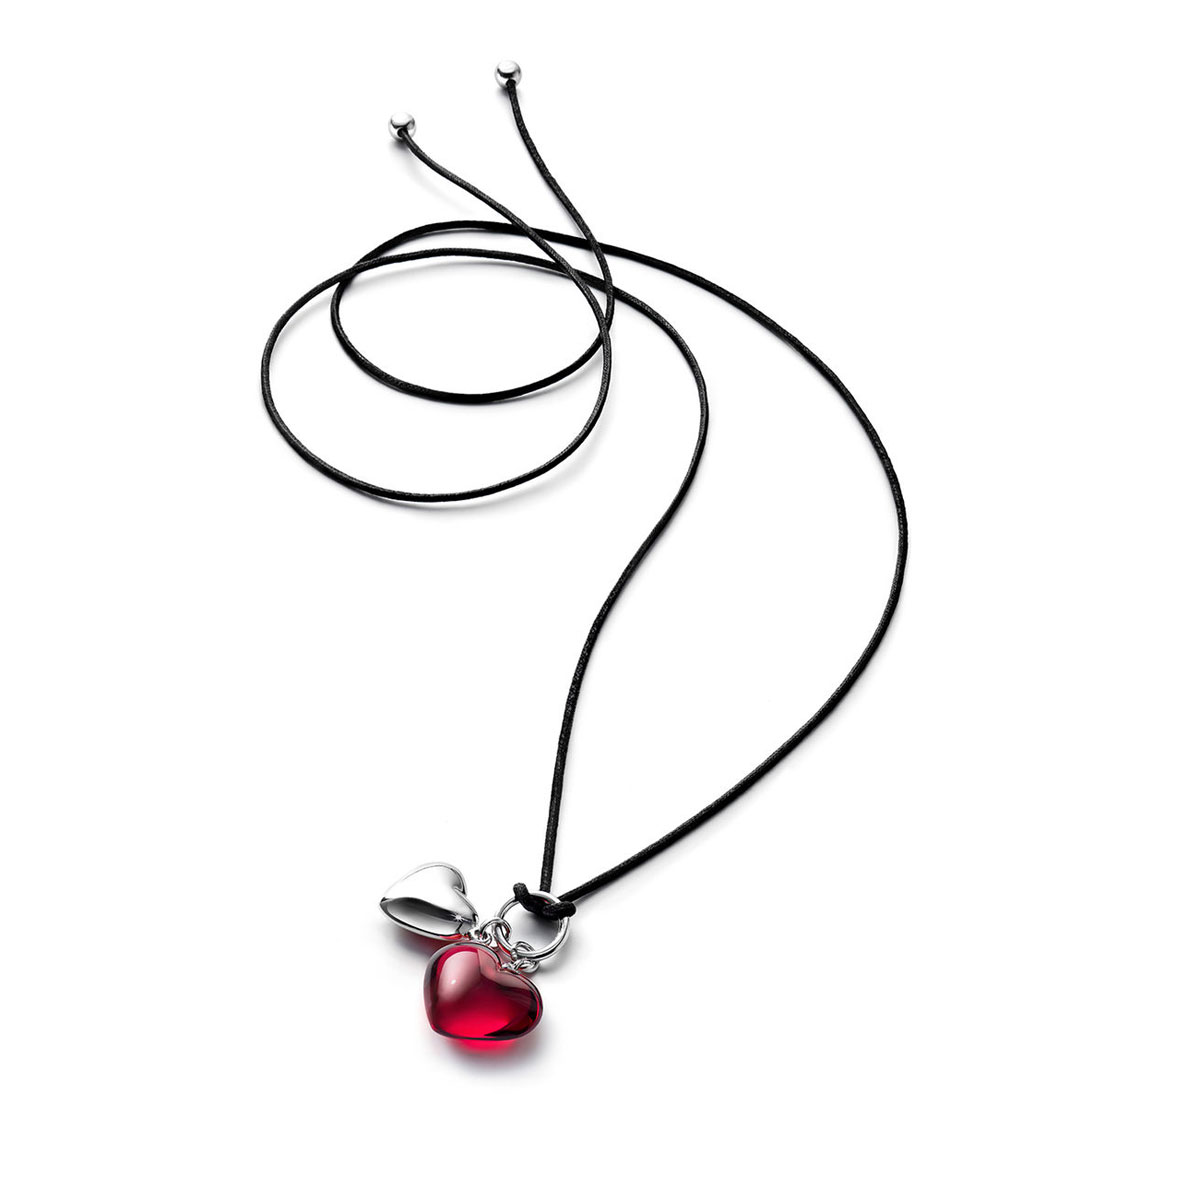 Baccarat Crystal Romance Pendant Necklace Silver And Red Crystal